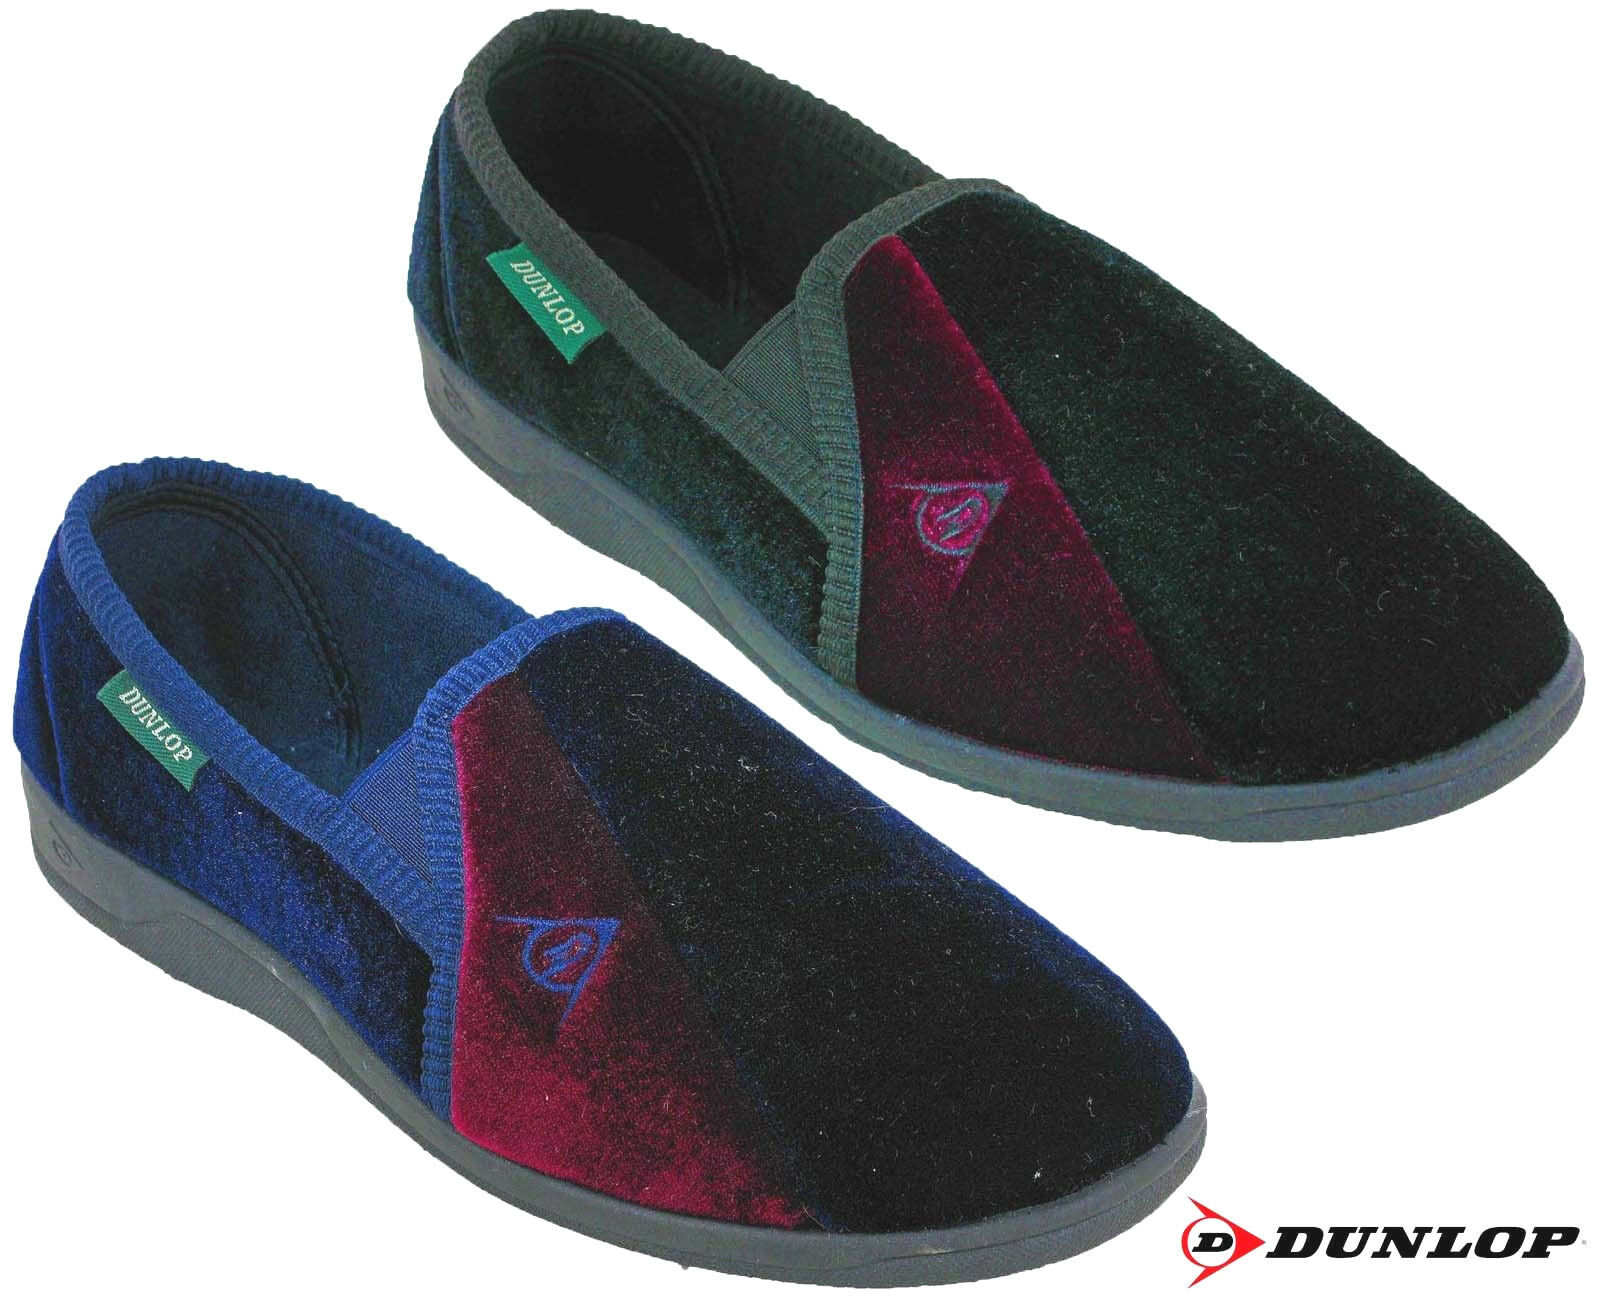 Dunlop Slippers Velour Twin Gusset Outdoor Limited Duncan Hombre Slip On Limited Outdoor Edition adbc25